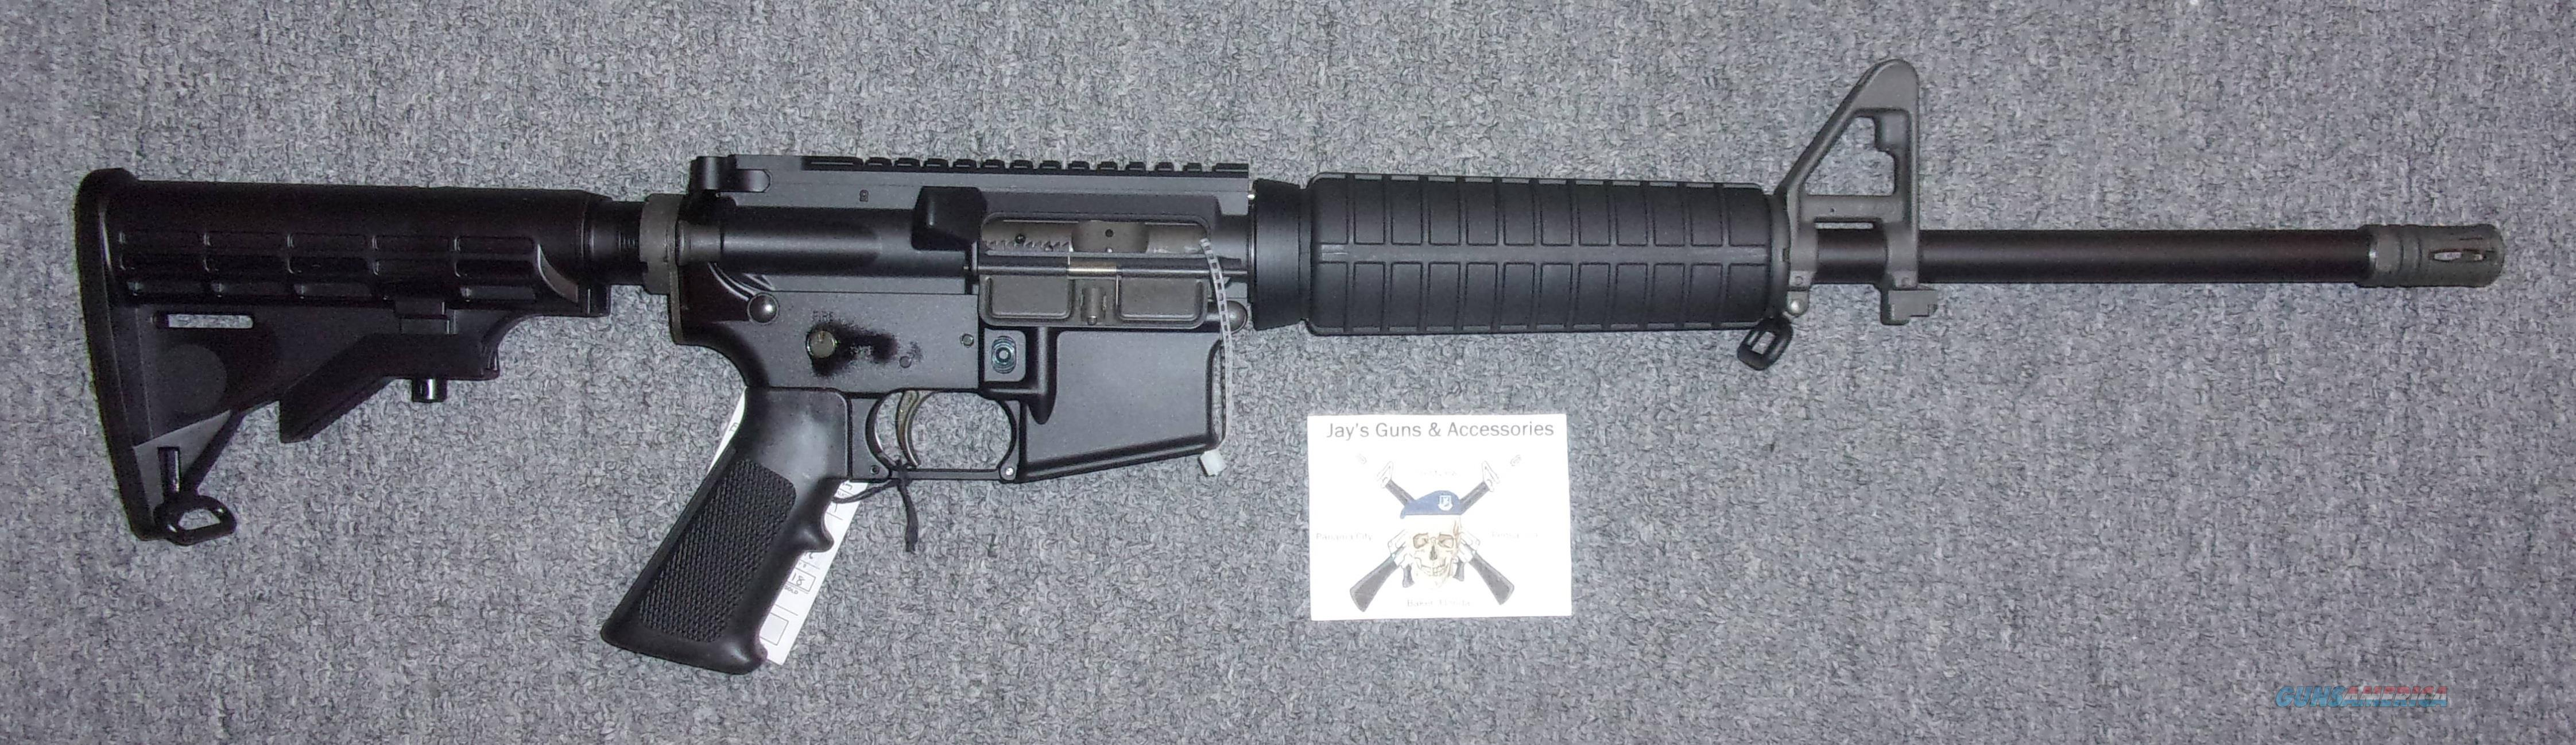 Eagle Arms Eagle-15 by Armalite  Guns > Rifles > AR-15 Rifles - Small Manufacturers > Complete Rifle